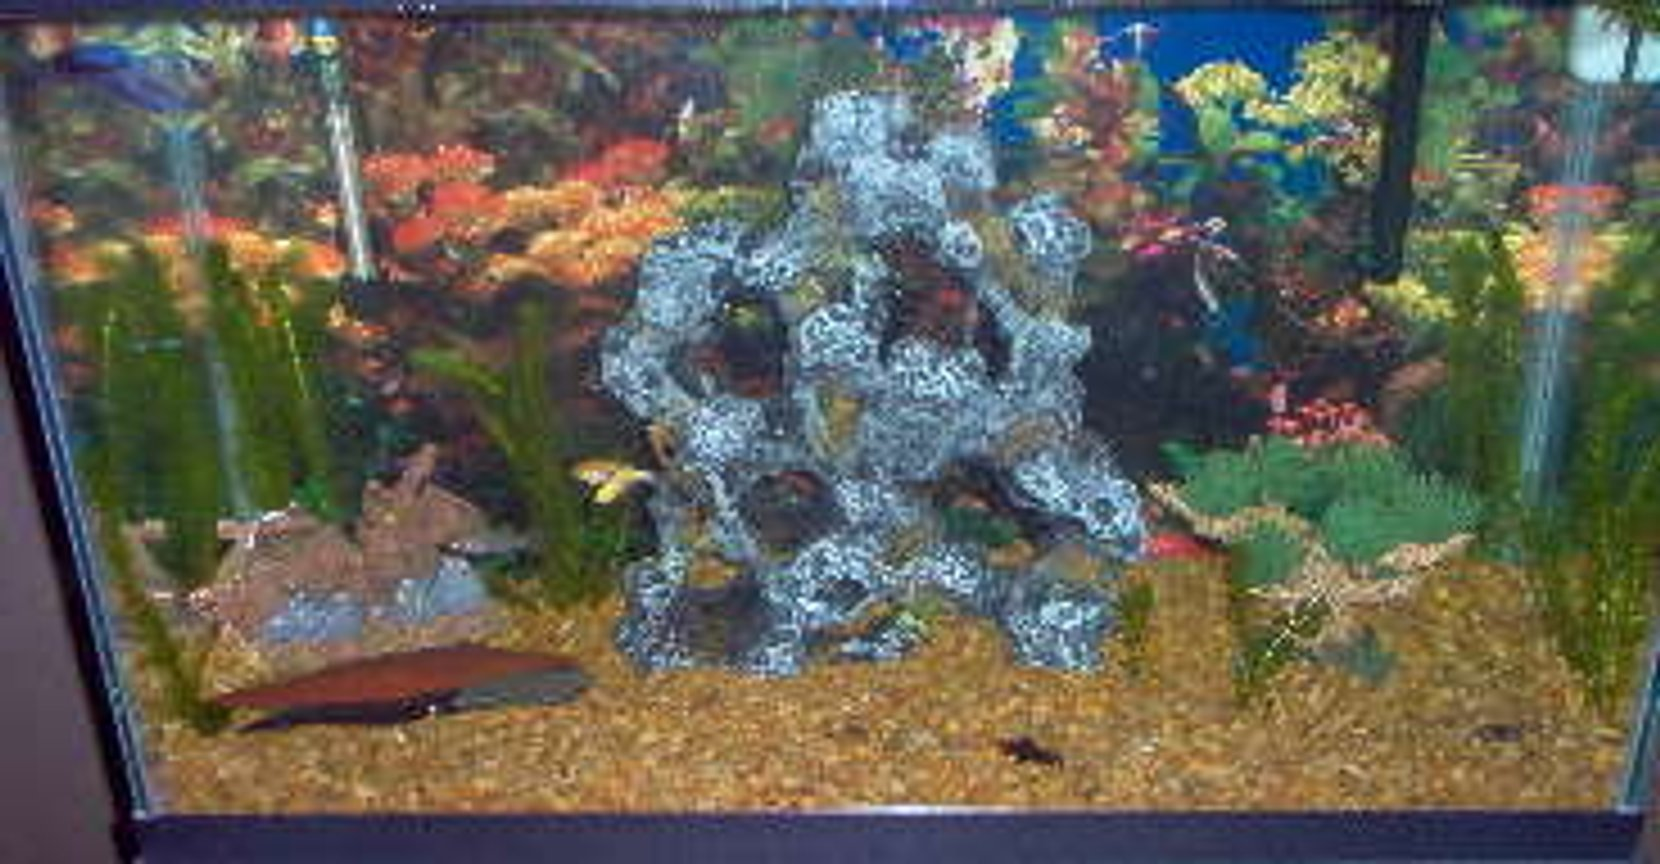 30 gallons freshwater fish tank (mostly fish and non-living decorations) - 30 gallon